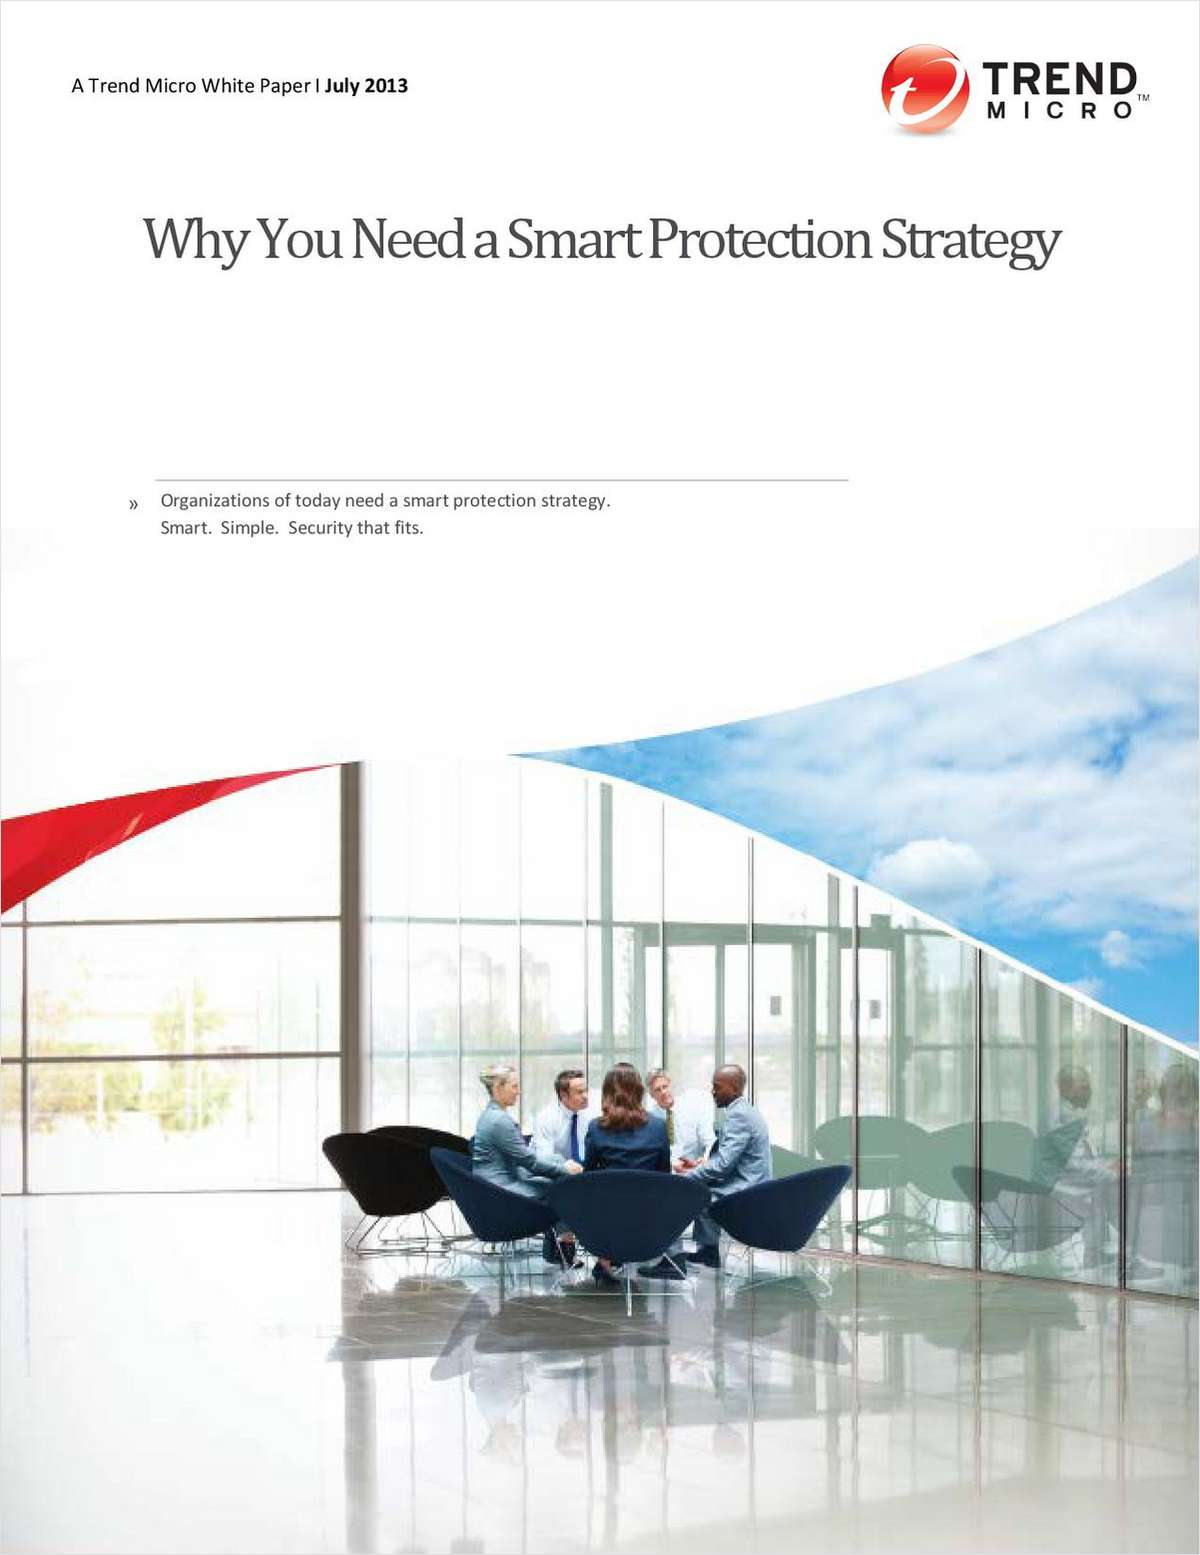 Why You Need a Smart Protection Strategy